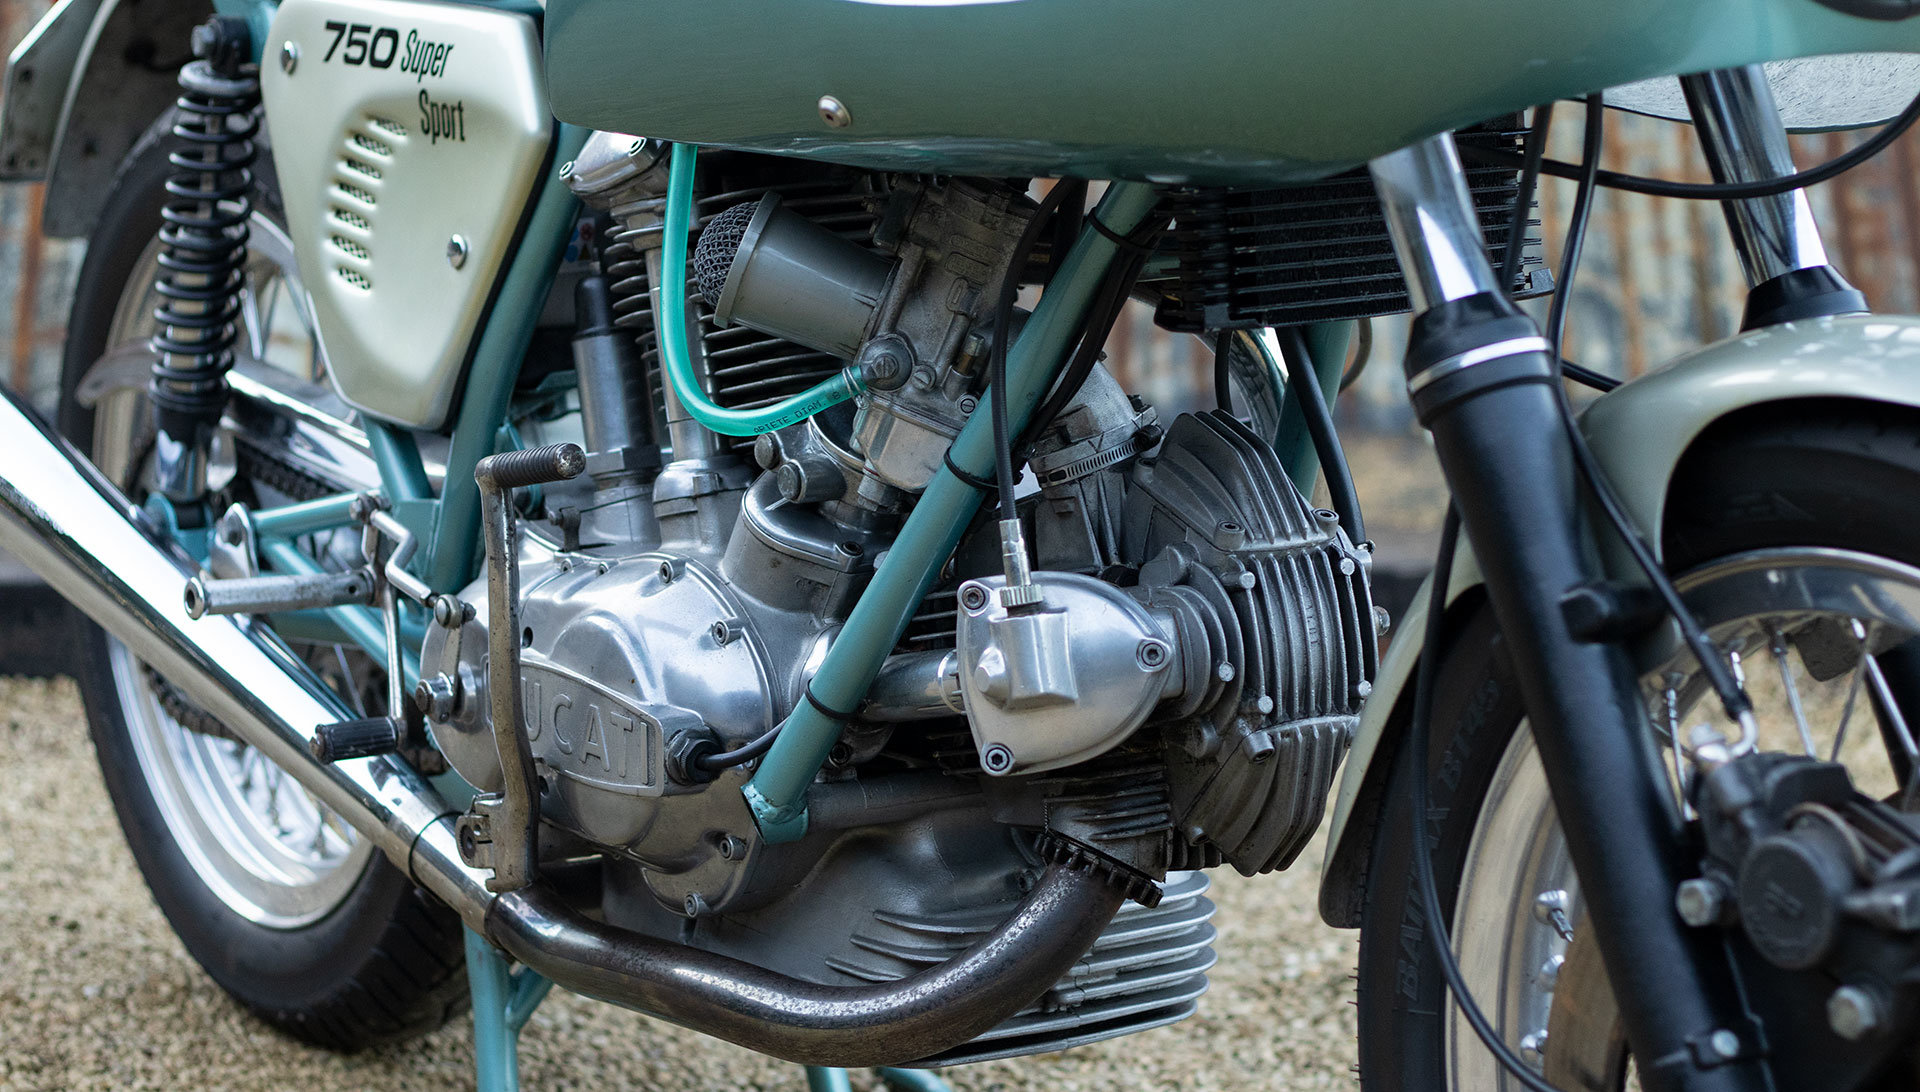 1974 Ducati 750 SS 'Green Frame' - Genuine with Falloon Report For Sale (picture 7 of 17)